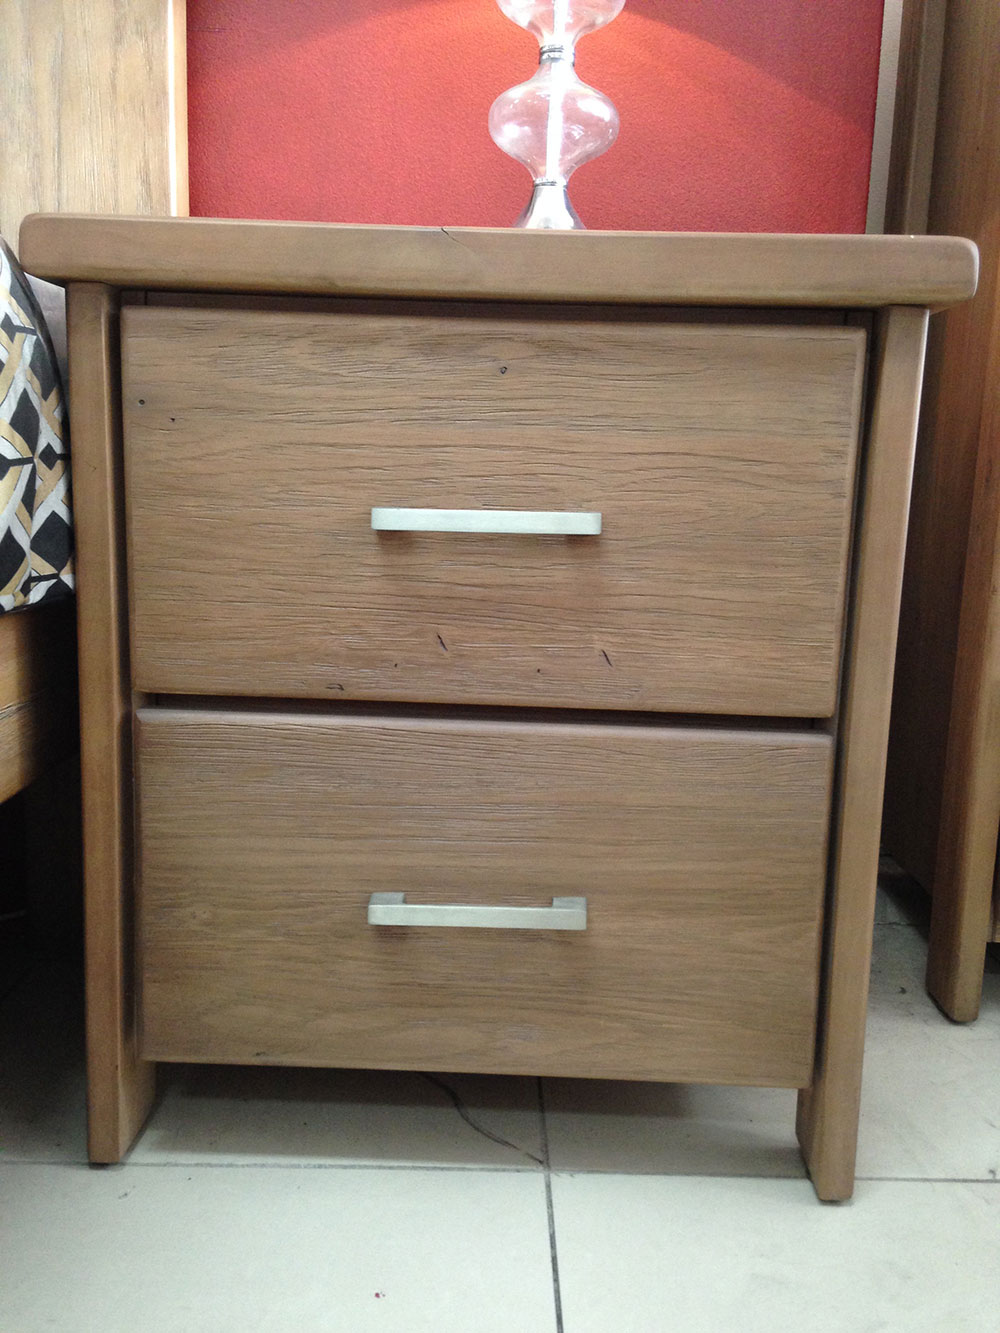 Morrocco Bedside Table